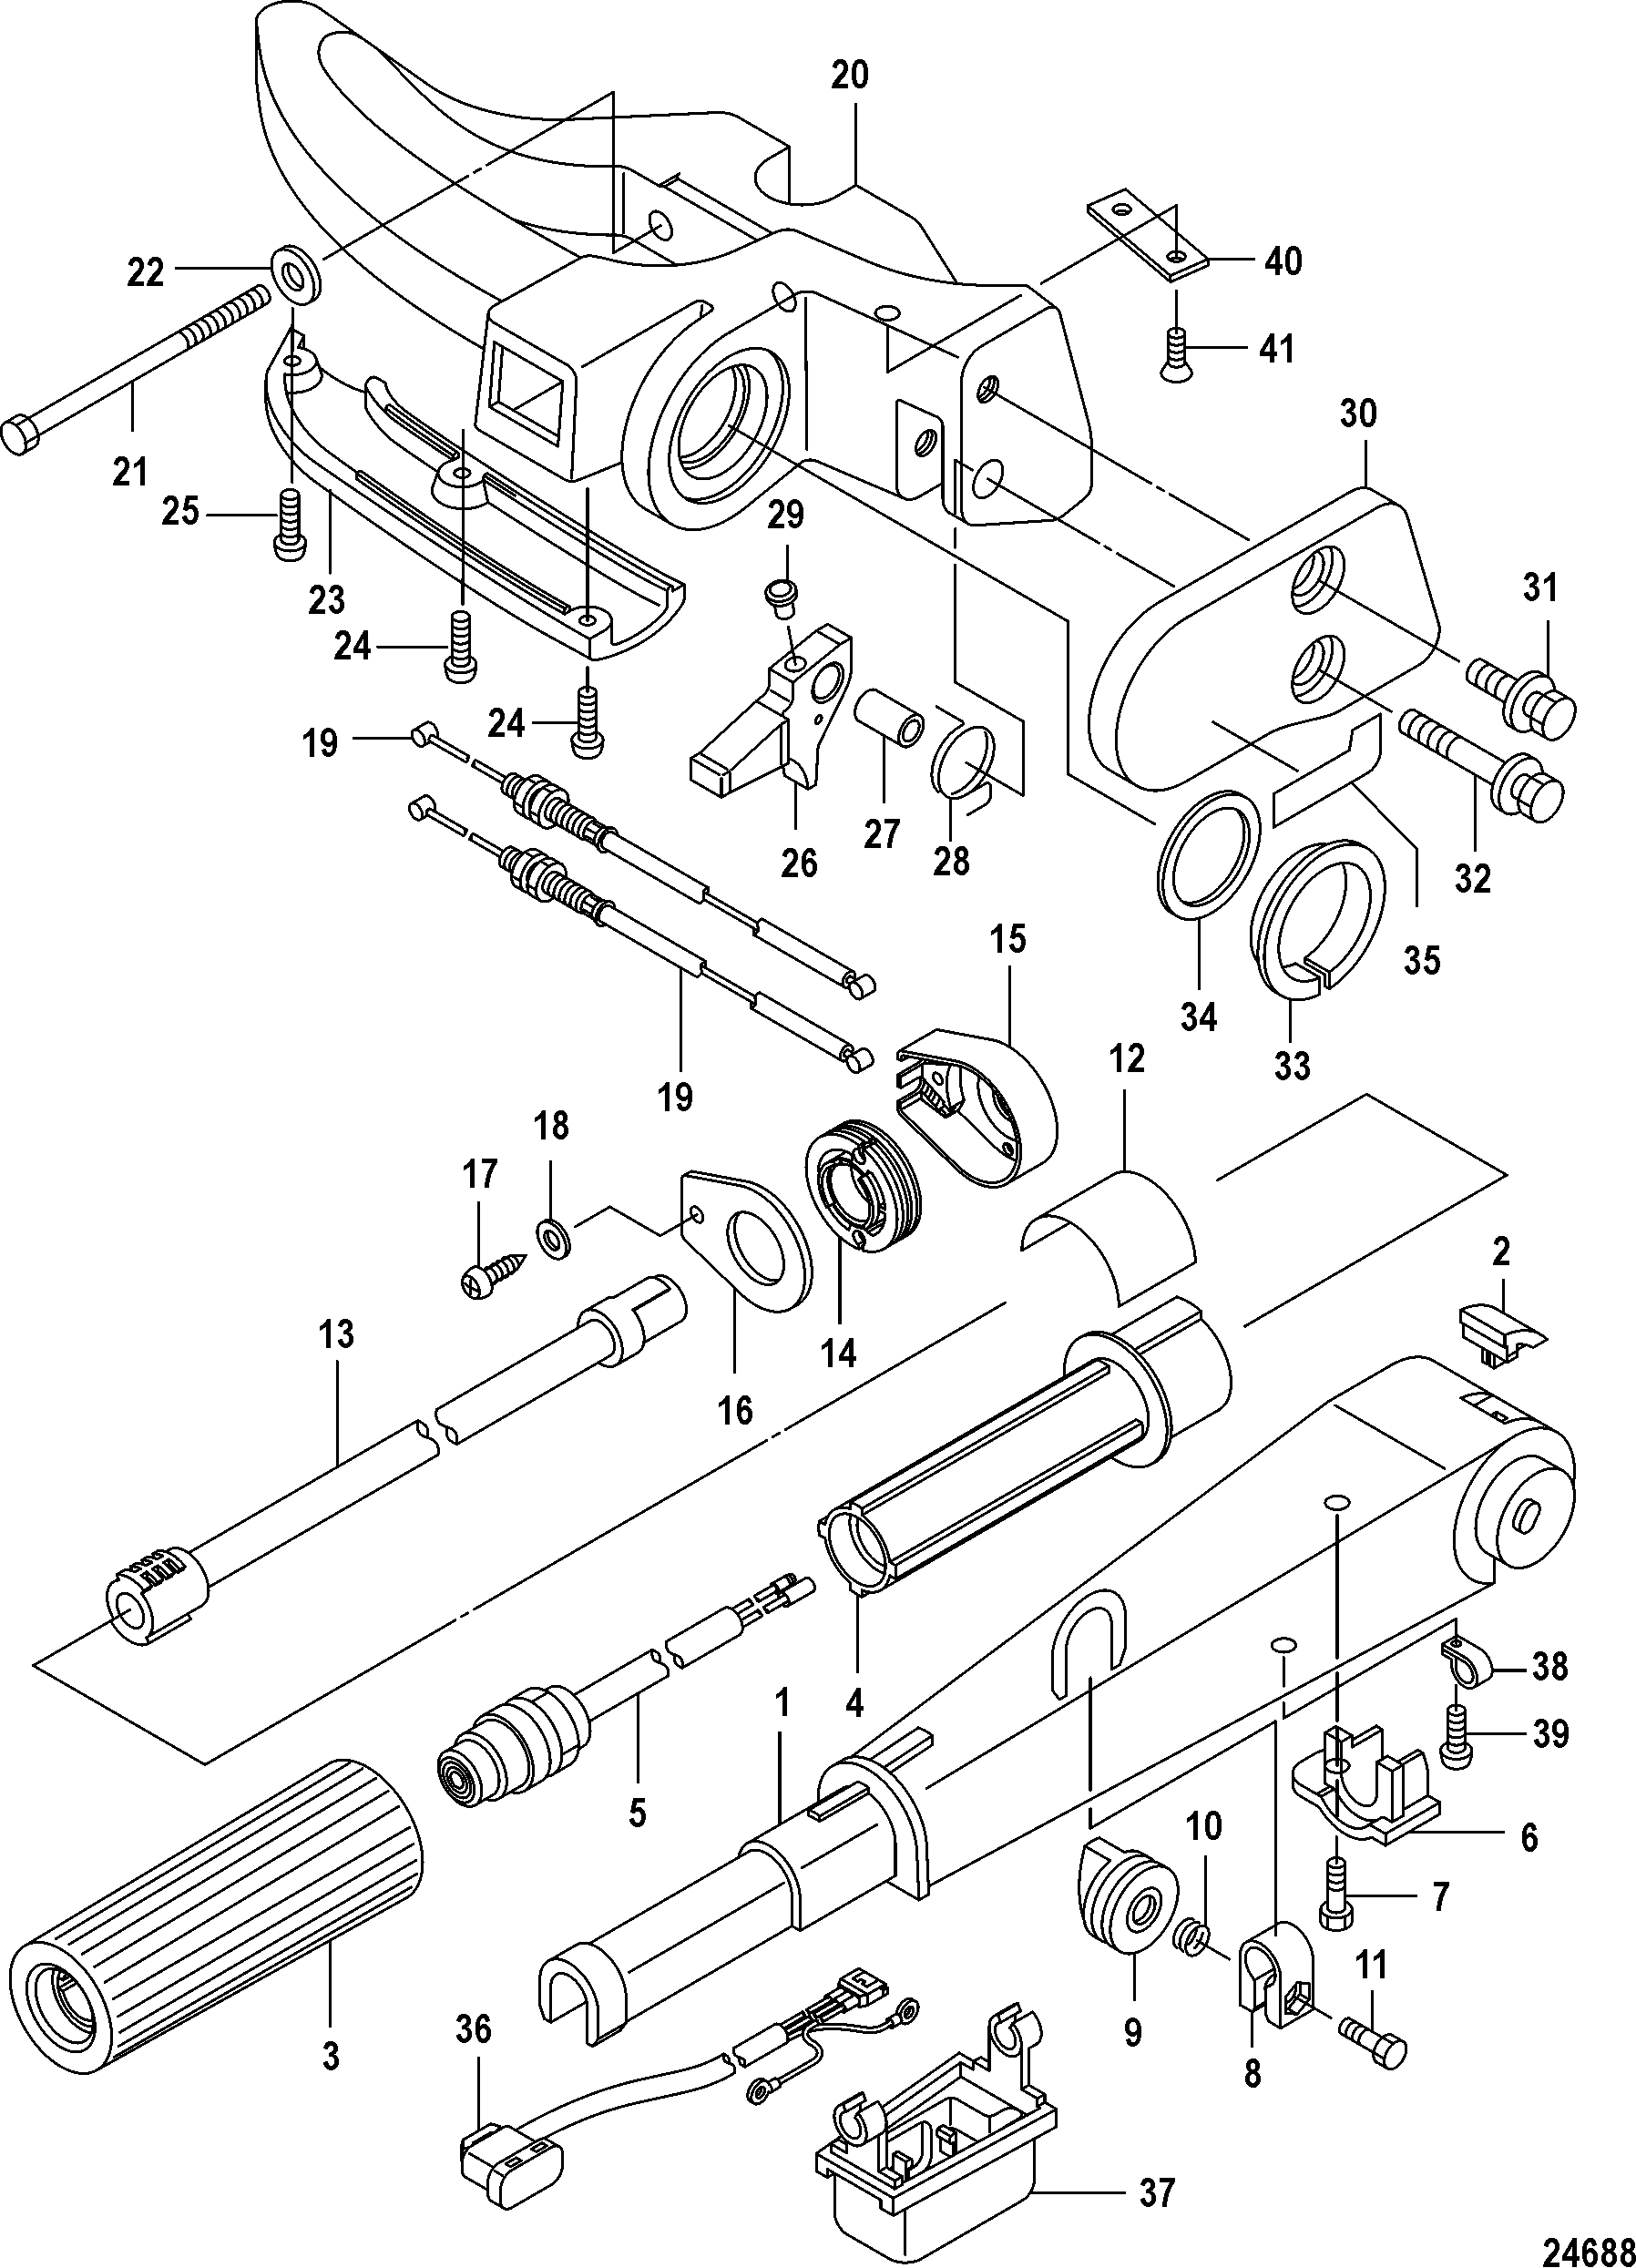 Johnson 9 4 Stroke Parts Diagram Electrical Wiring Diagrams Evinrude Hp 209cc Basic Guide U2022 15 2